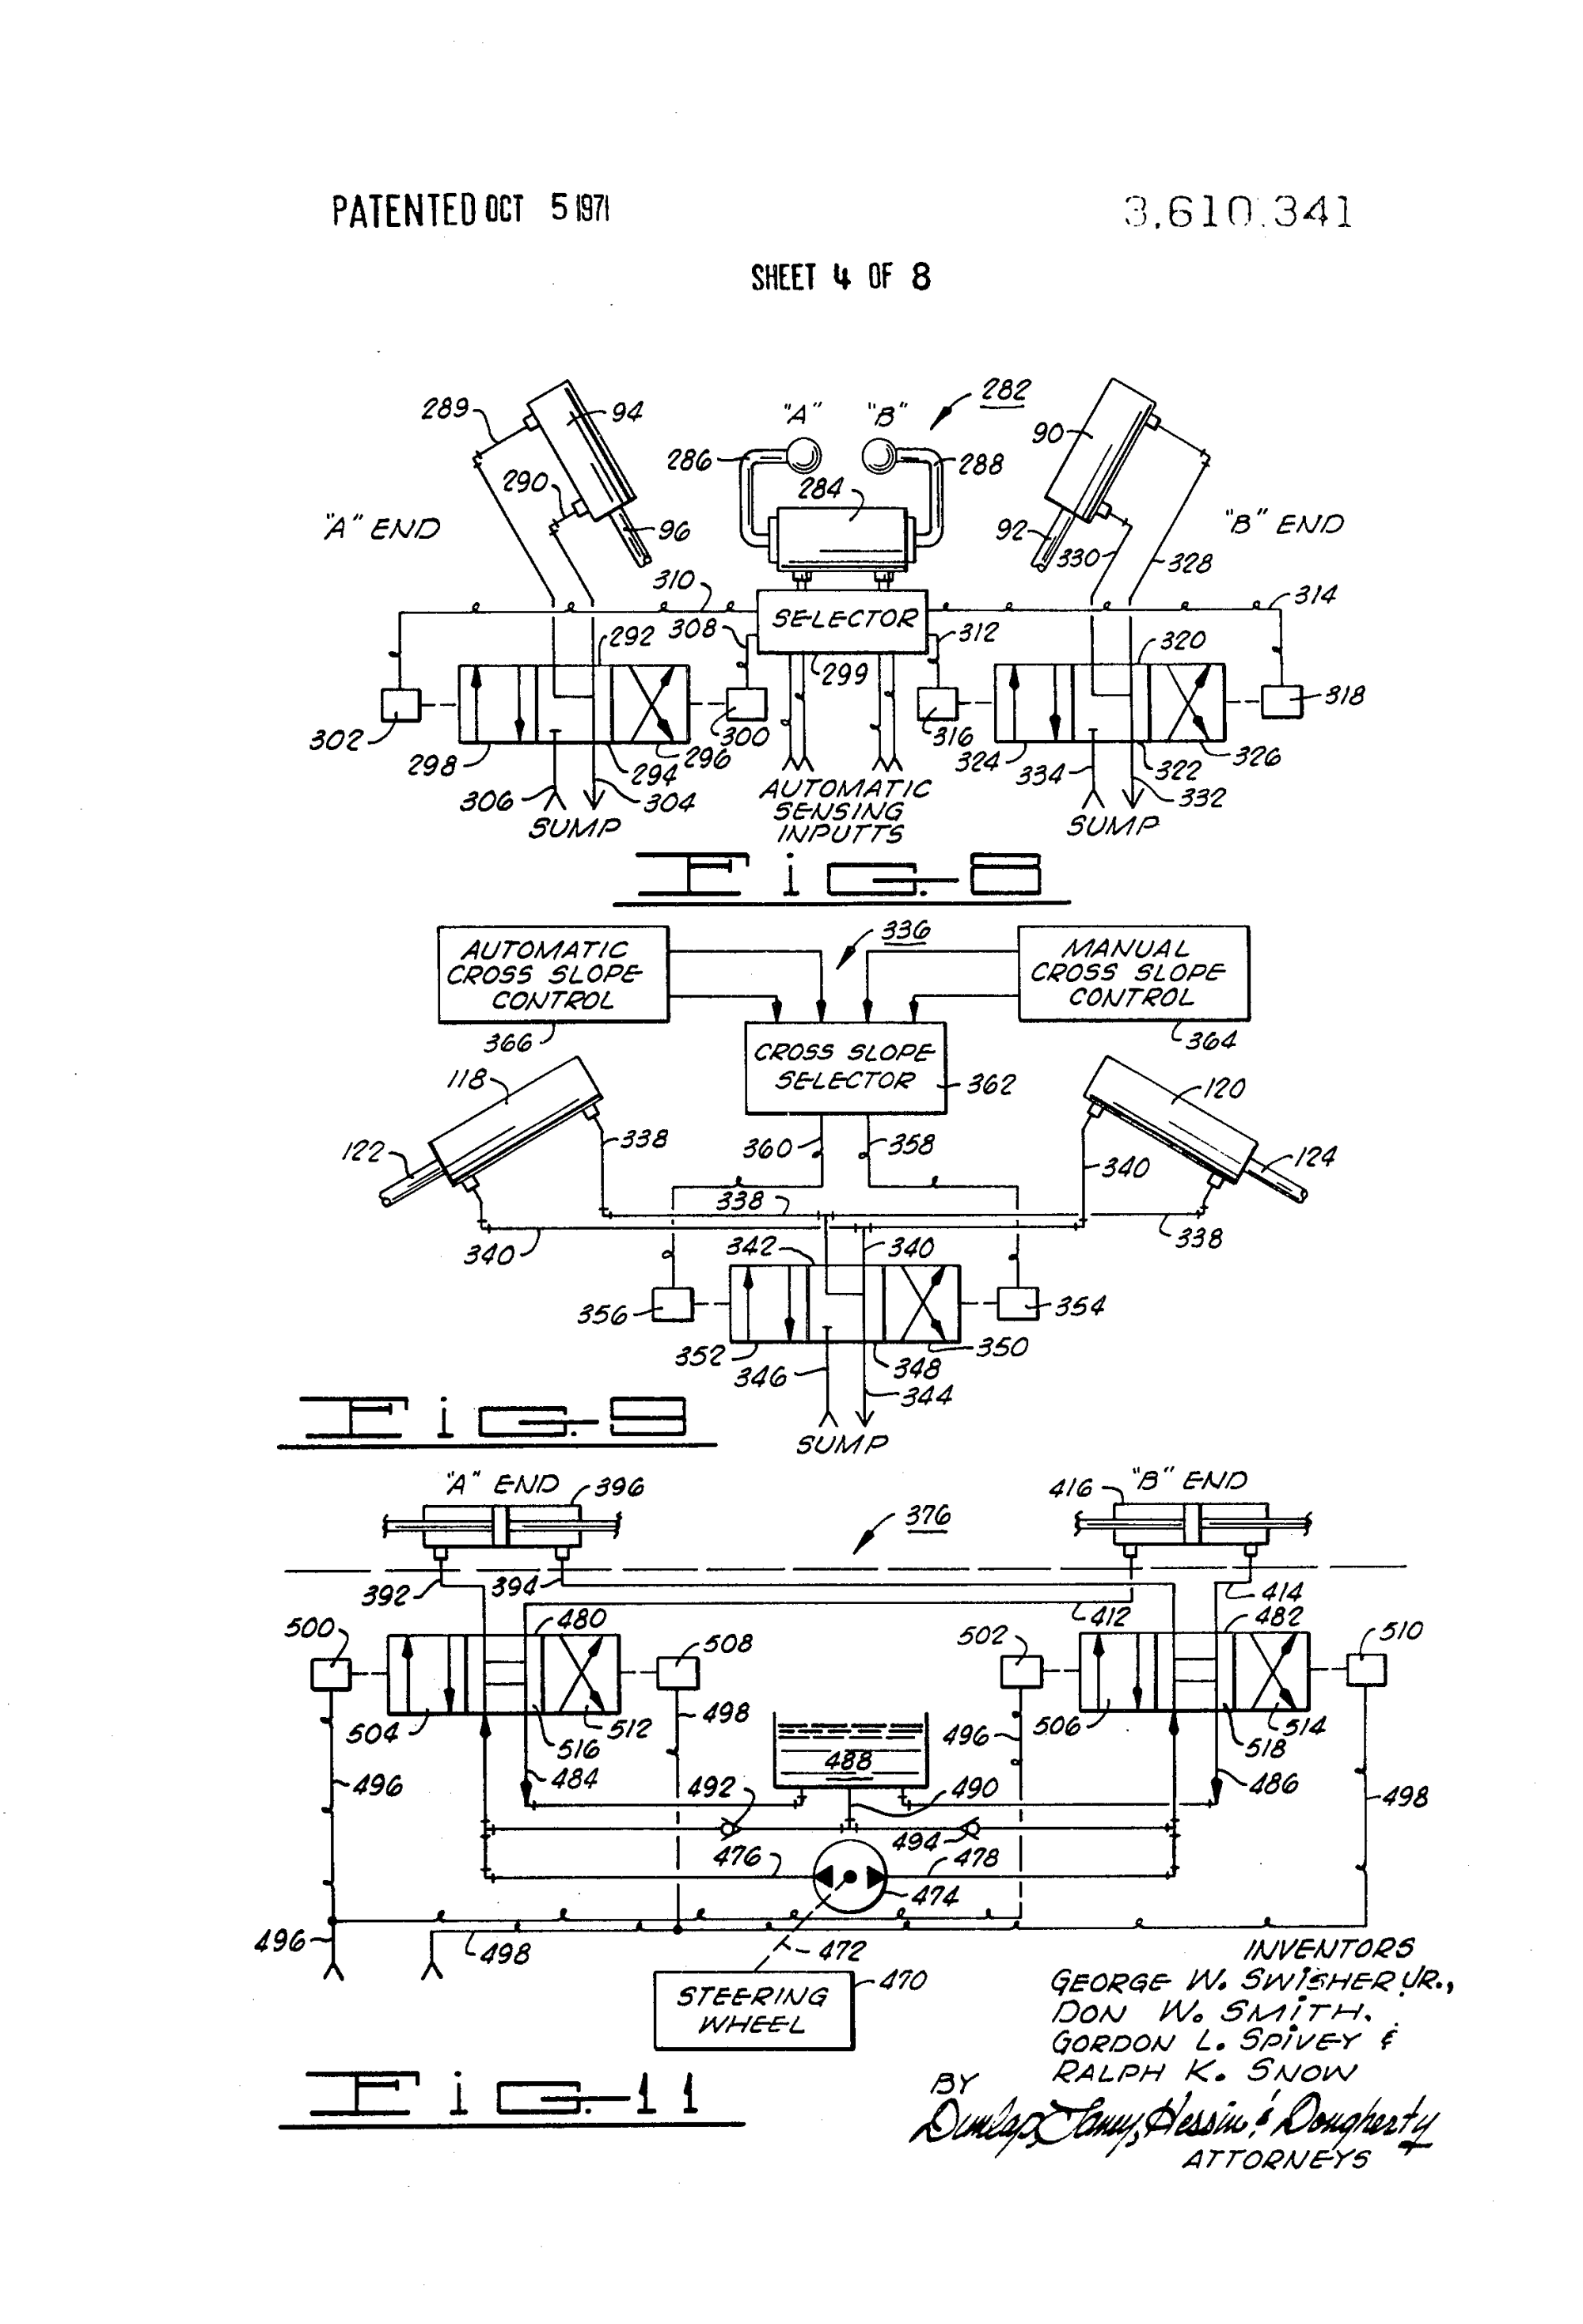 hight resolution of ih 574 wiring harness wiring diagram more ih 574 wiring diagram wiring diagram expert ih 574